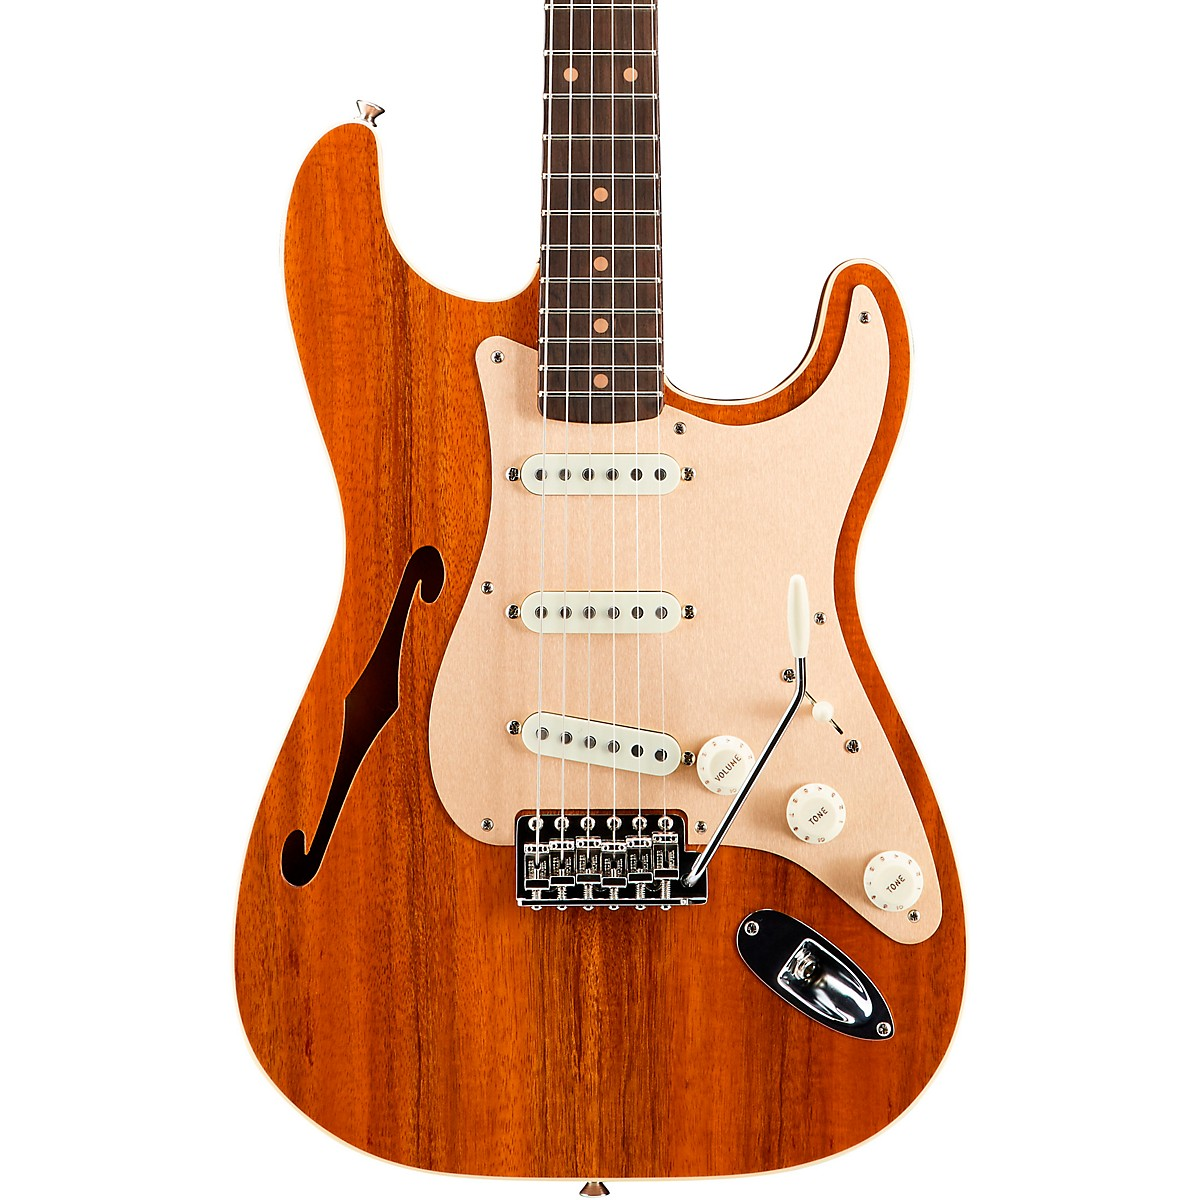 Fender Custom Shop Artisan Koa Stratocaster Electric Guitar